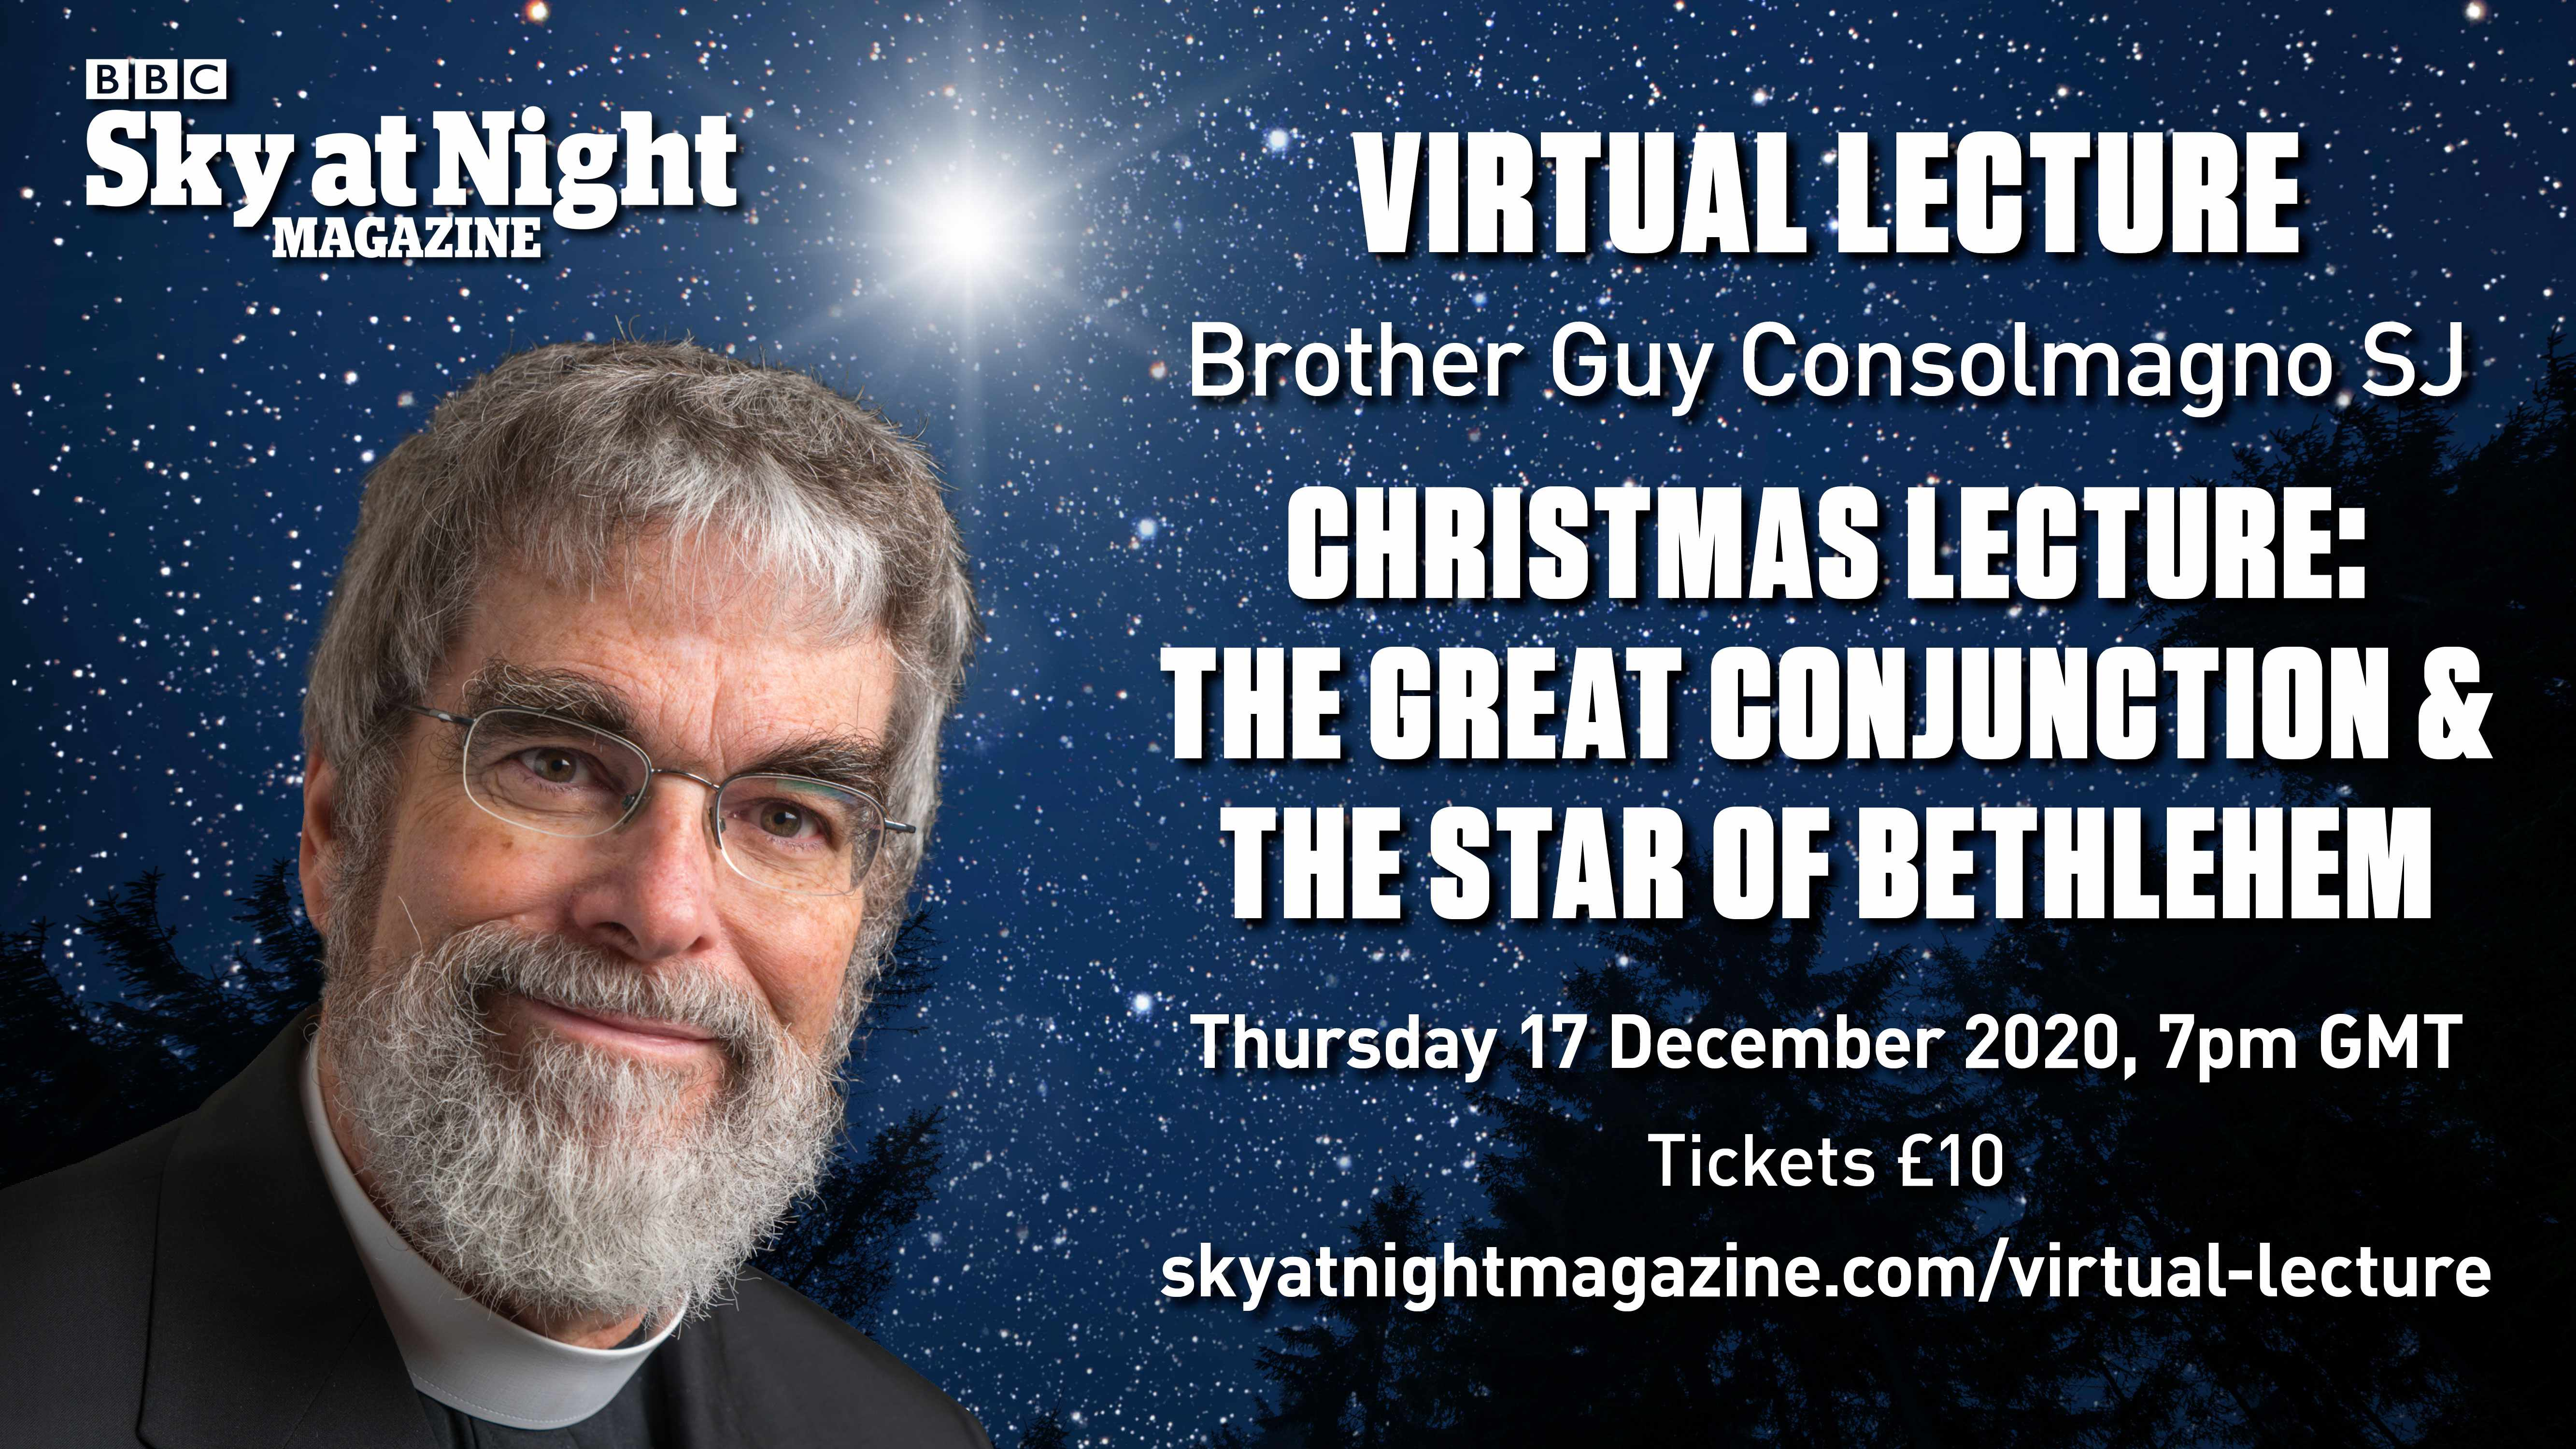 Join BBC Sky at Night Magazine's webinar with Guy Consolmagno on 17 December 2020